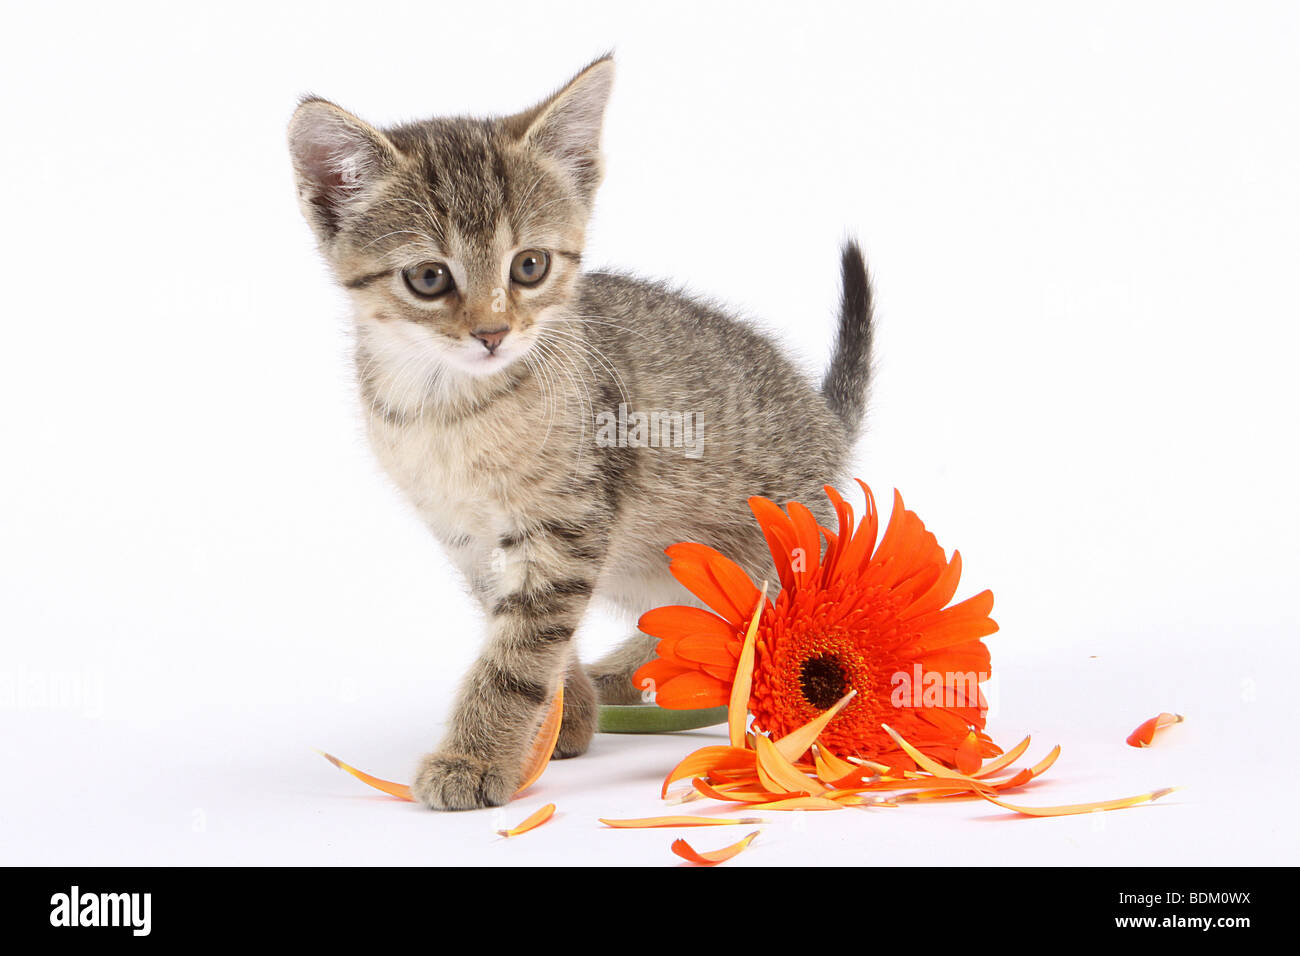 tabby kitten besides blossom - cut out - Stock Image